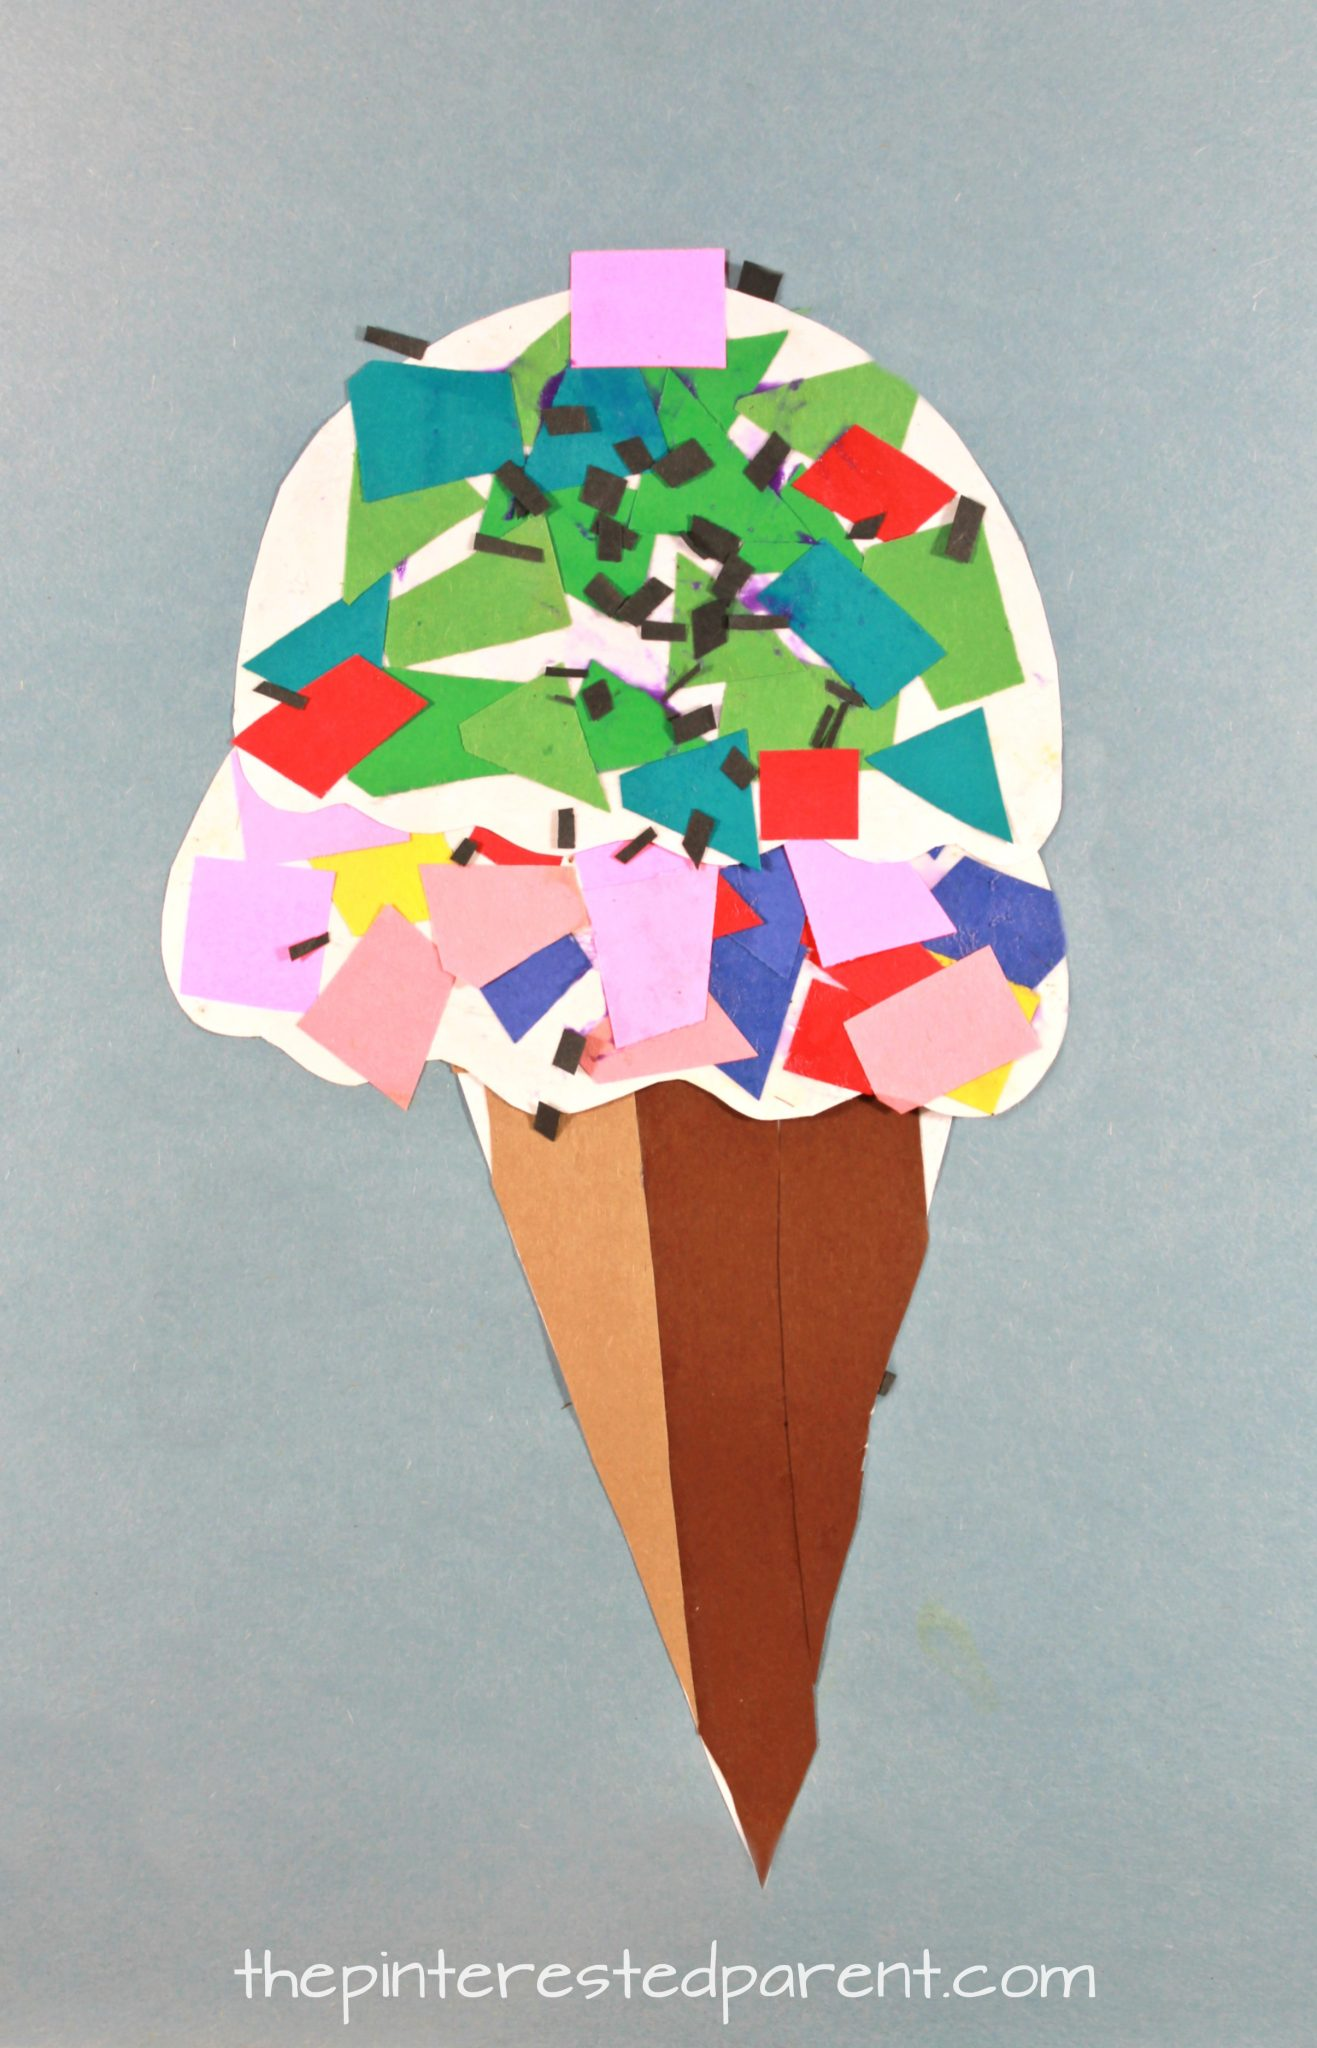 Printable paper mosaic ice cream cone the pinterested parent for Paper art projects